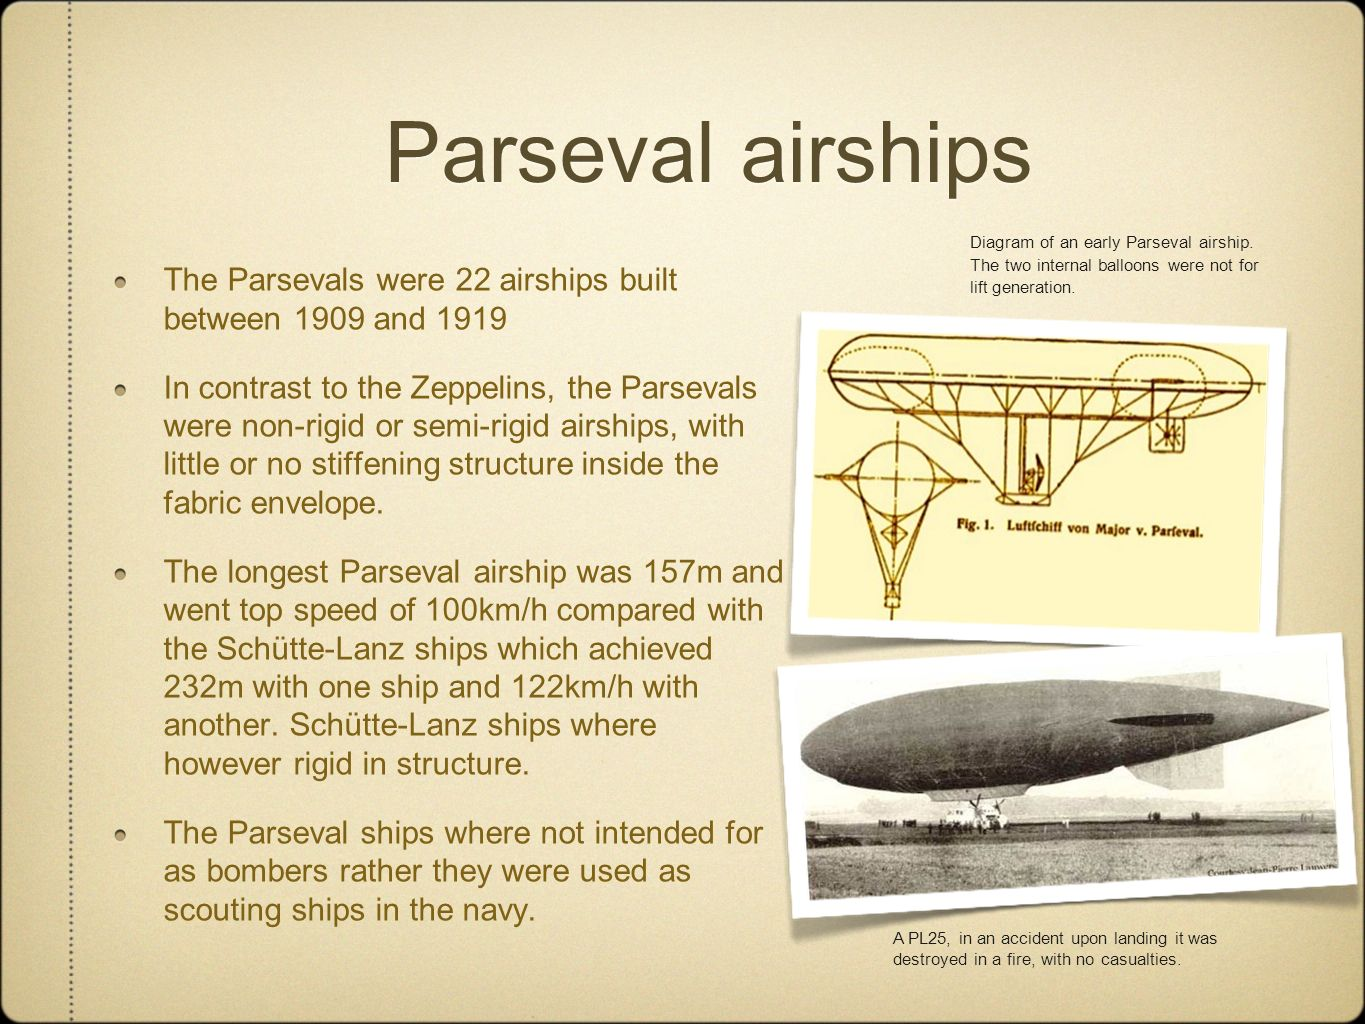 Parseval airships The Parsevals were 22 airships built between 1909 and 1919.